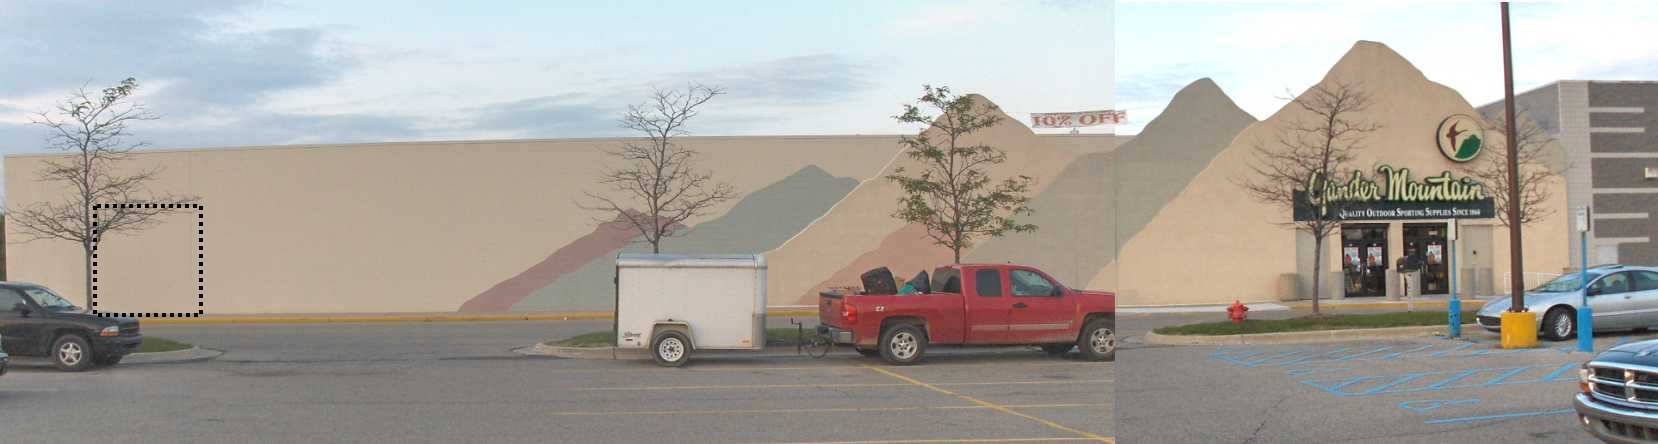 Gander-Mountain-Store-Summit-Mall-Waterford-Michigan-Door-Addition-Project-Picture-1